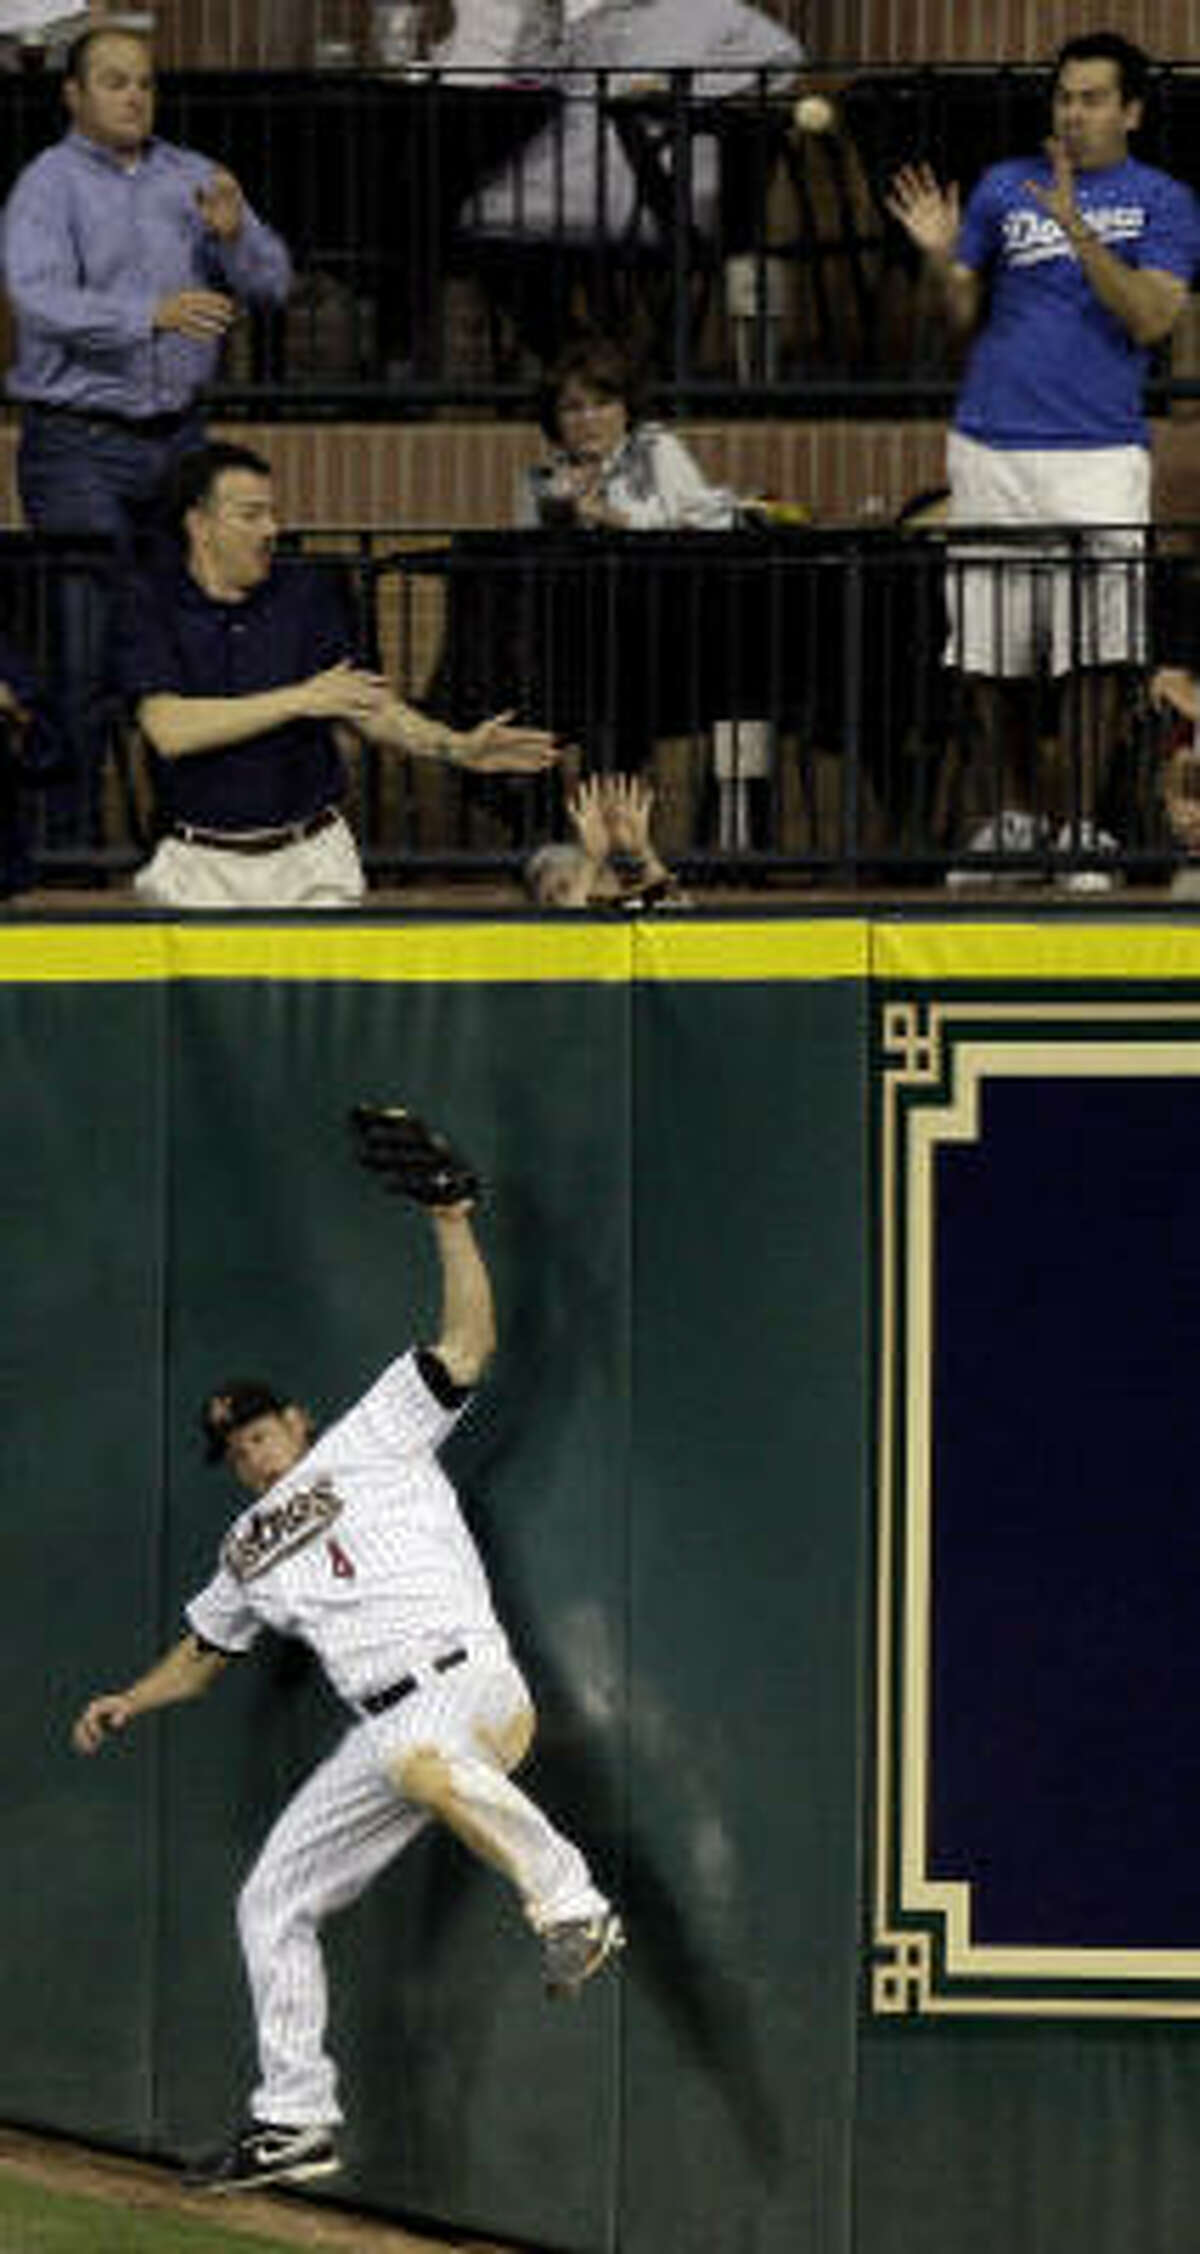 Astros center fielder Jason Michaels (4) hits the wall as fans reach for a two-run home run hit by Los Angeles Dodgers' Manny Ramirez during the seventh inning. Ramirez and Orlando Hudson scored on the homer.